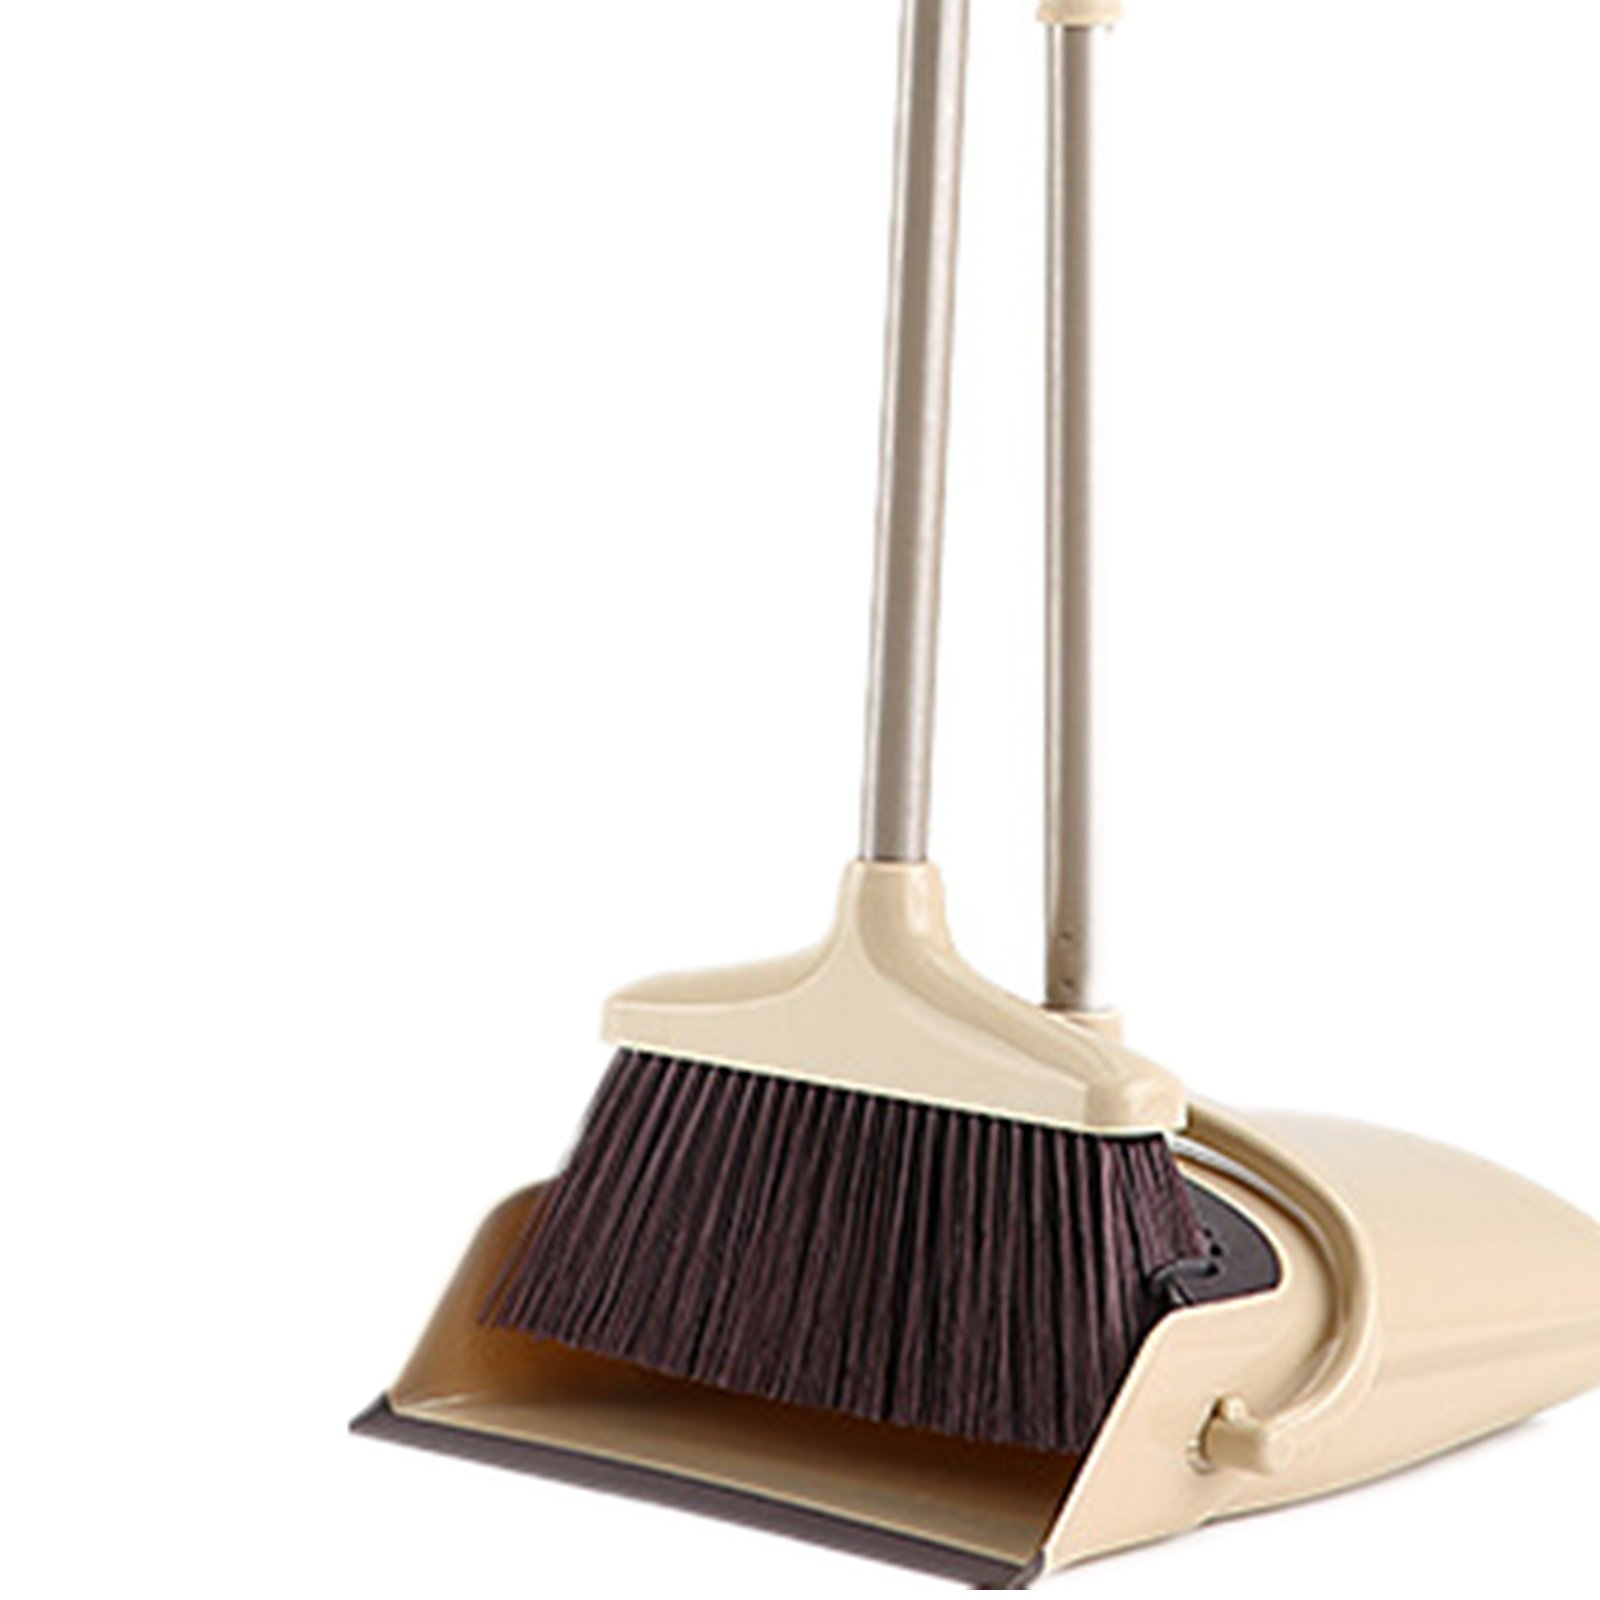 Broom and Dustpan Set, 48 inch Extendable Broom Standing Upright - Wind Proof - Foldable Sweep Set with Soft Bristles & Rubber Edge & Dust Pan with Teeth, Perfect for Kitchen, Garden, Office, etc. by SerBion (Image #1)